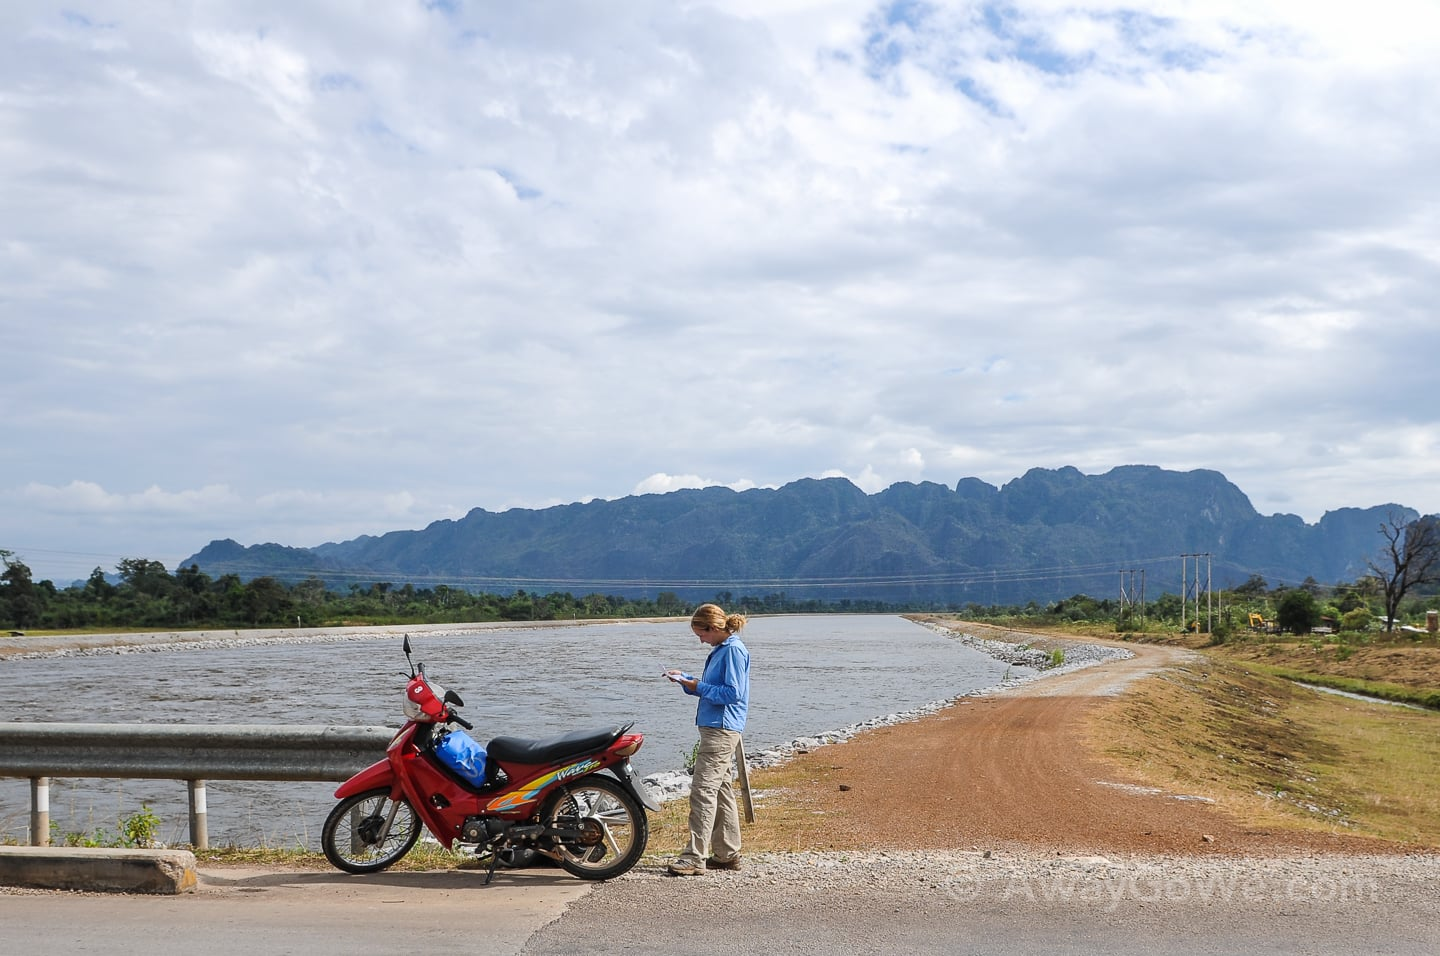 standing near motorbike on a bridge in laos